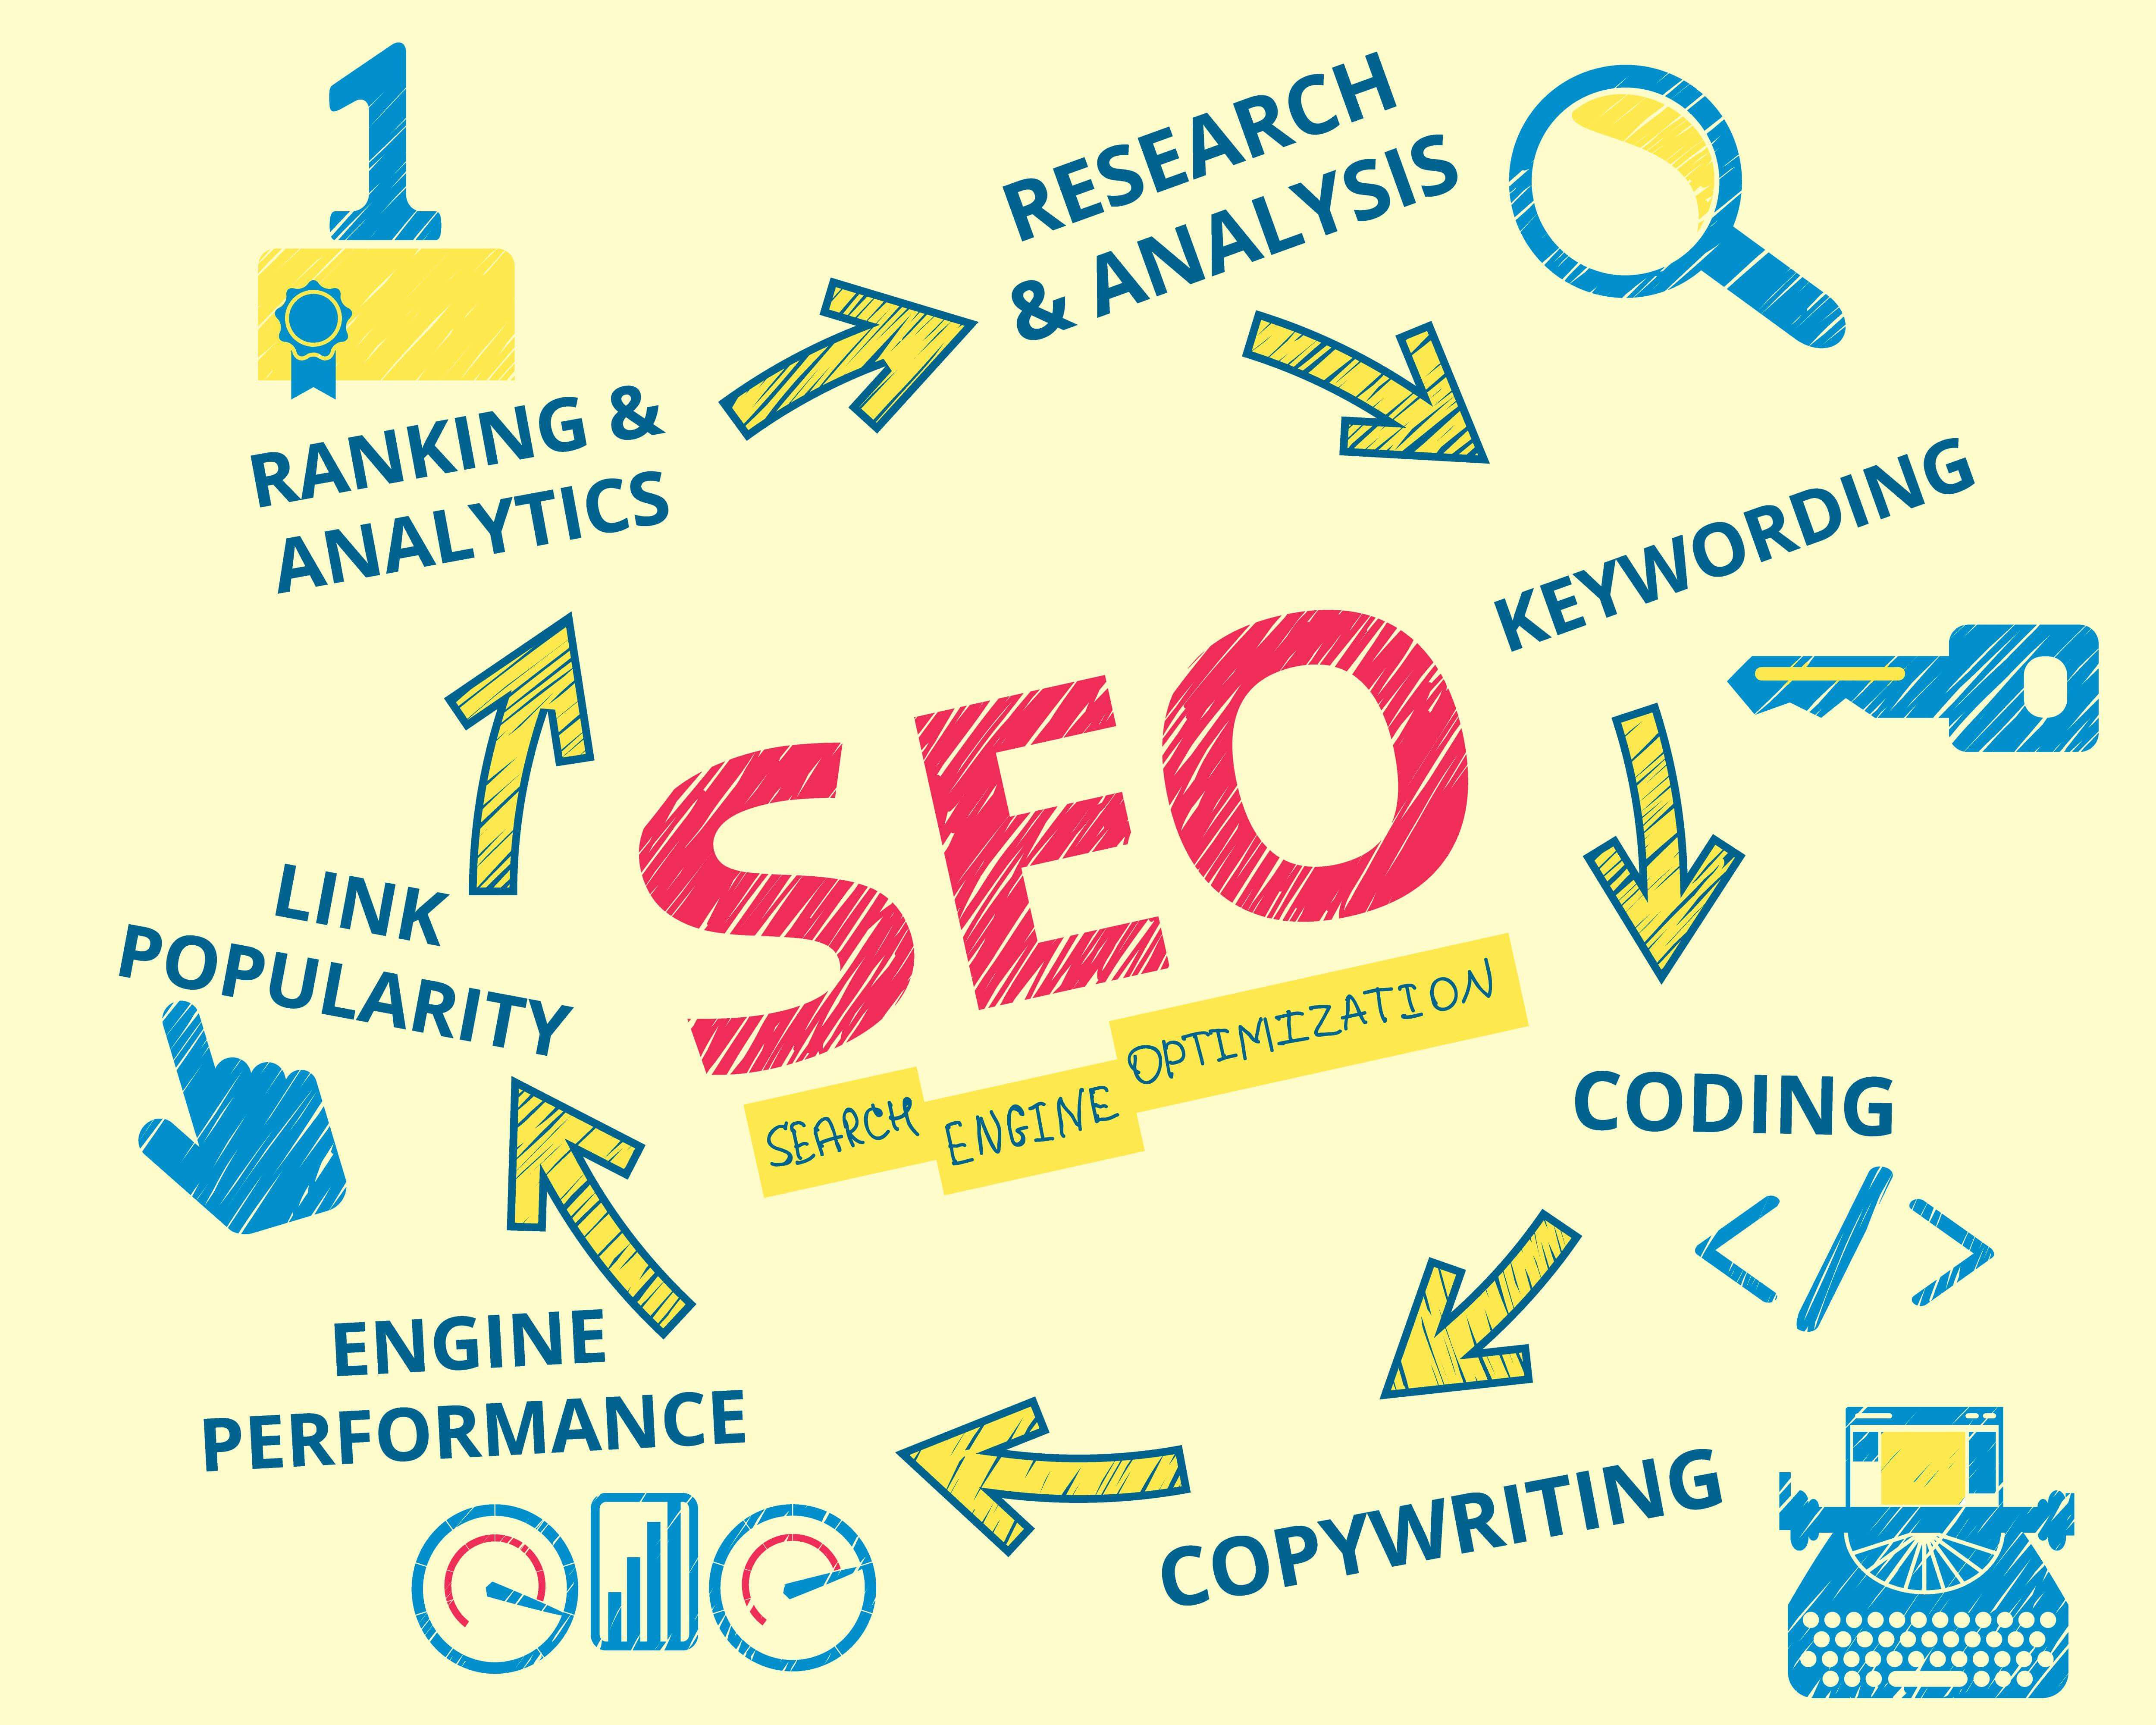 SEO tips for small business from the experts